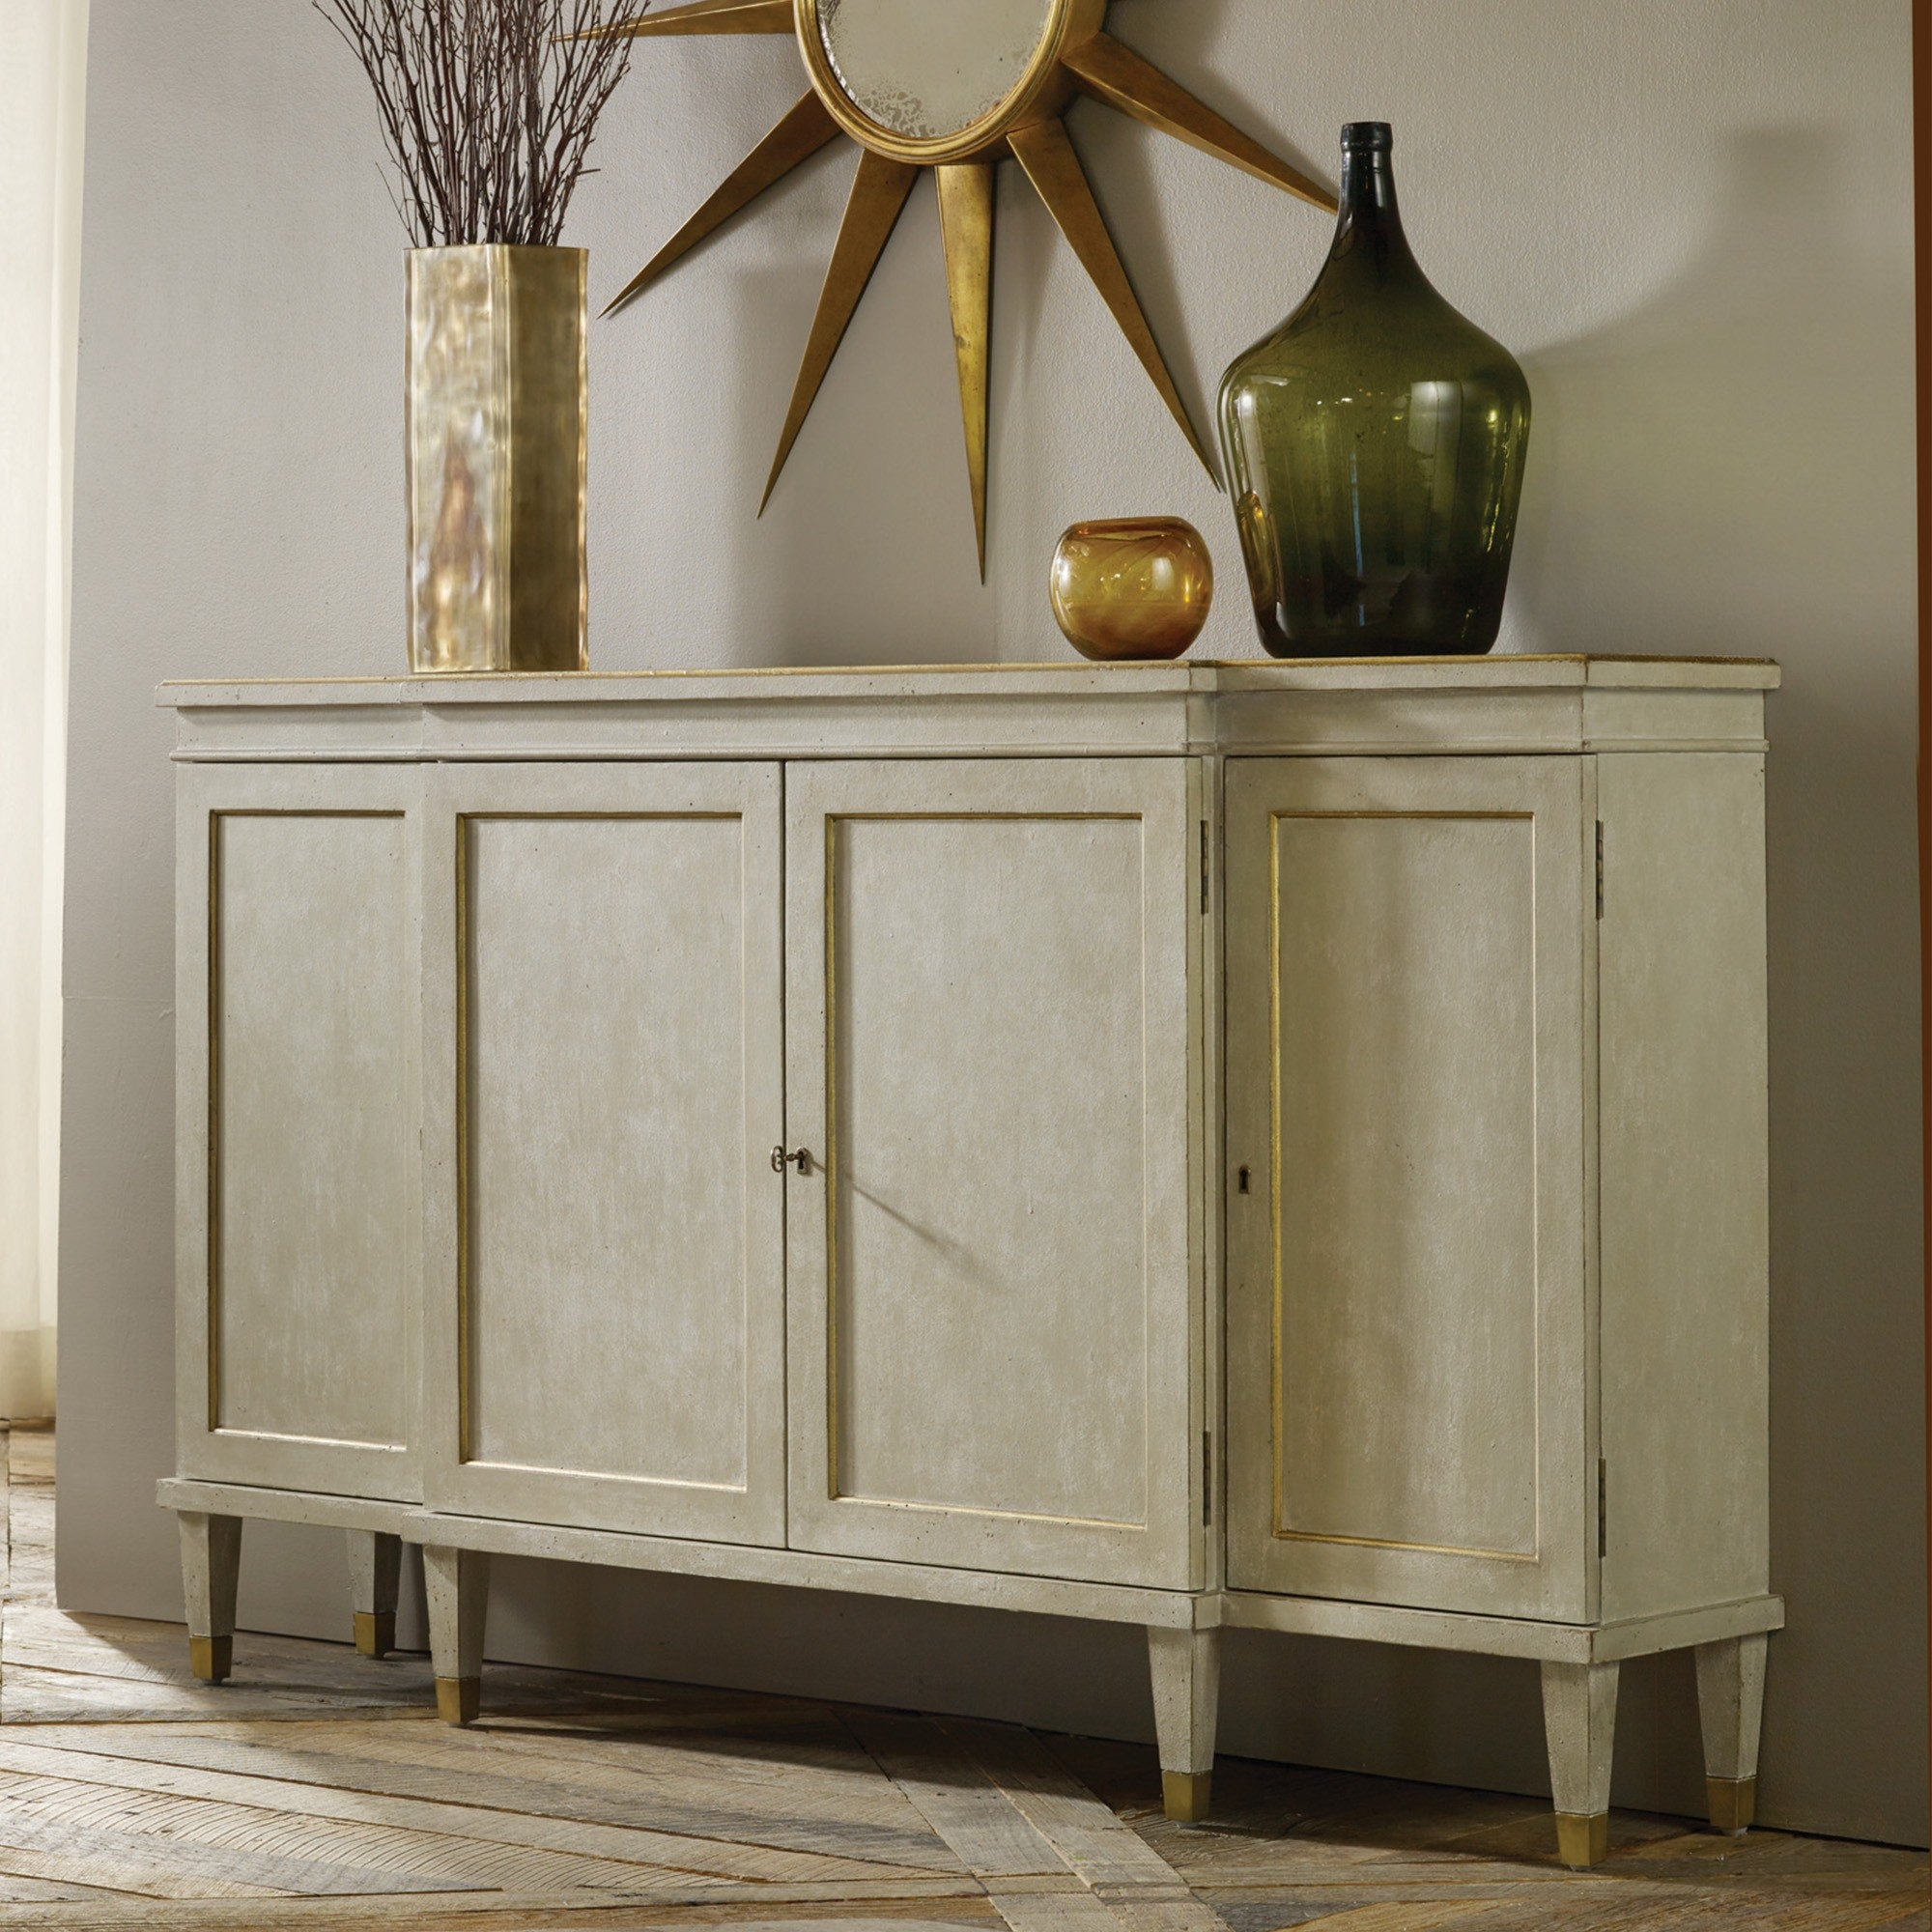 Gustavian Breakfront Cabinet Light Grey Modern History Mh722f01 Pertaining To Modern Breakfront (#4 of 15)